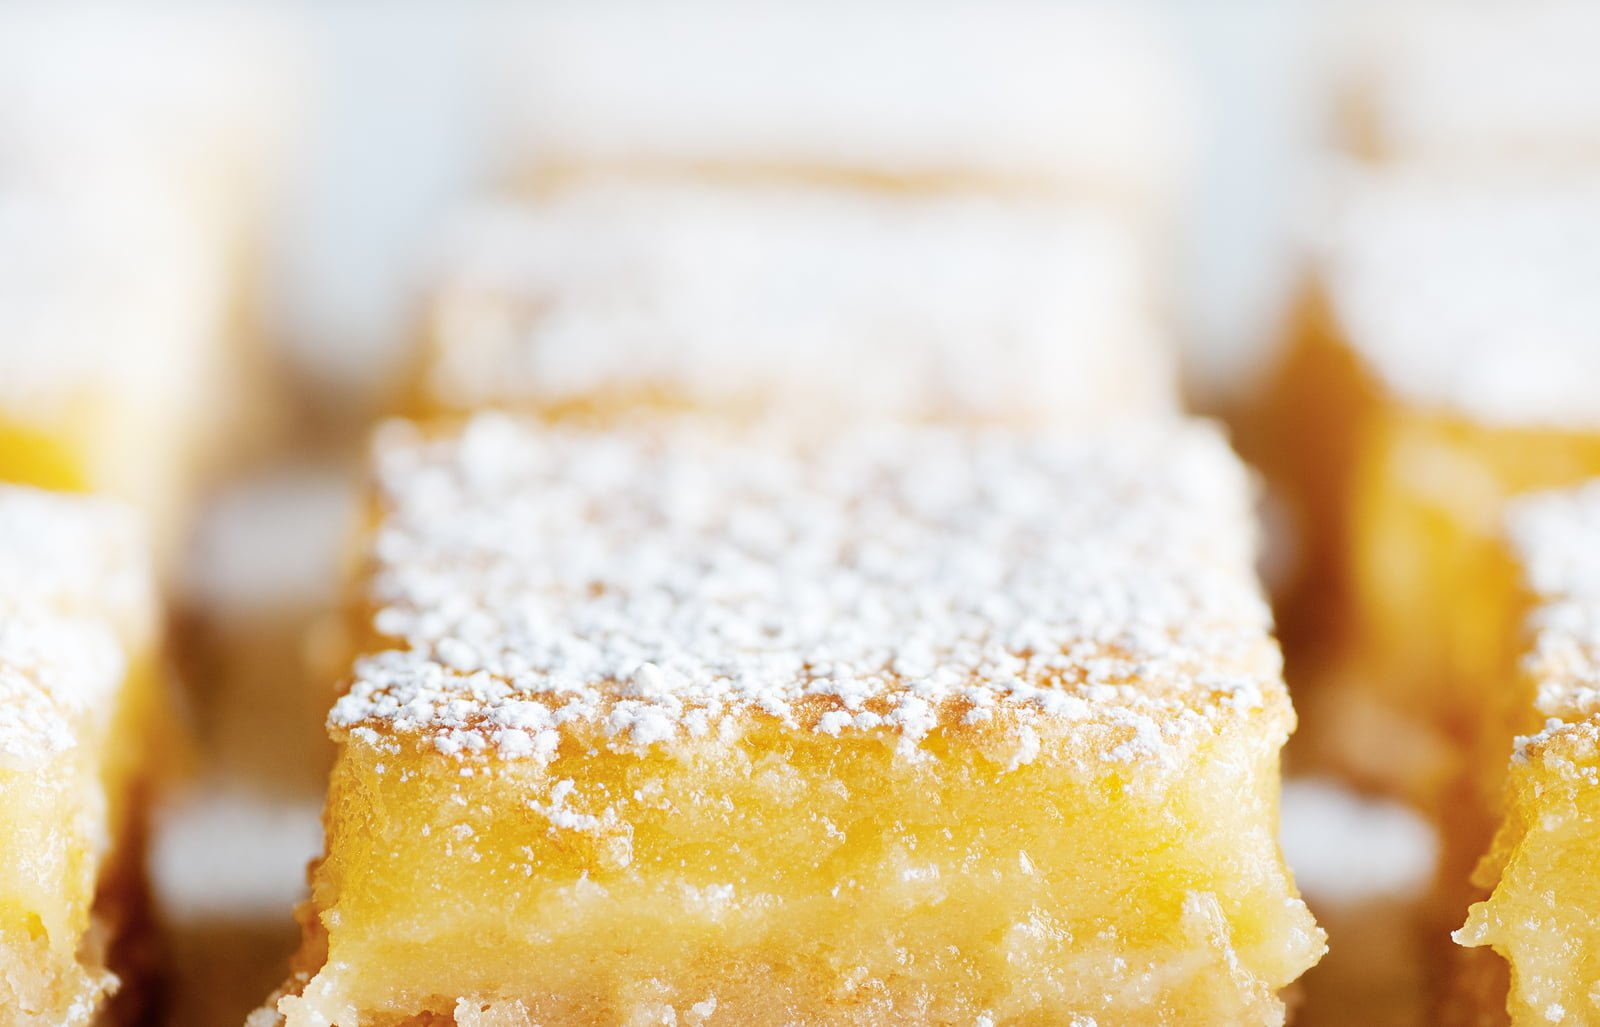 Fresh baked Meyer lemon bars with powdered sugar